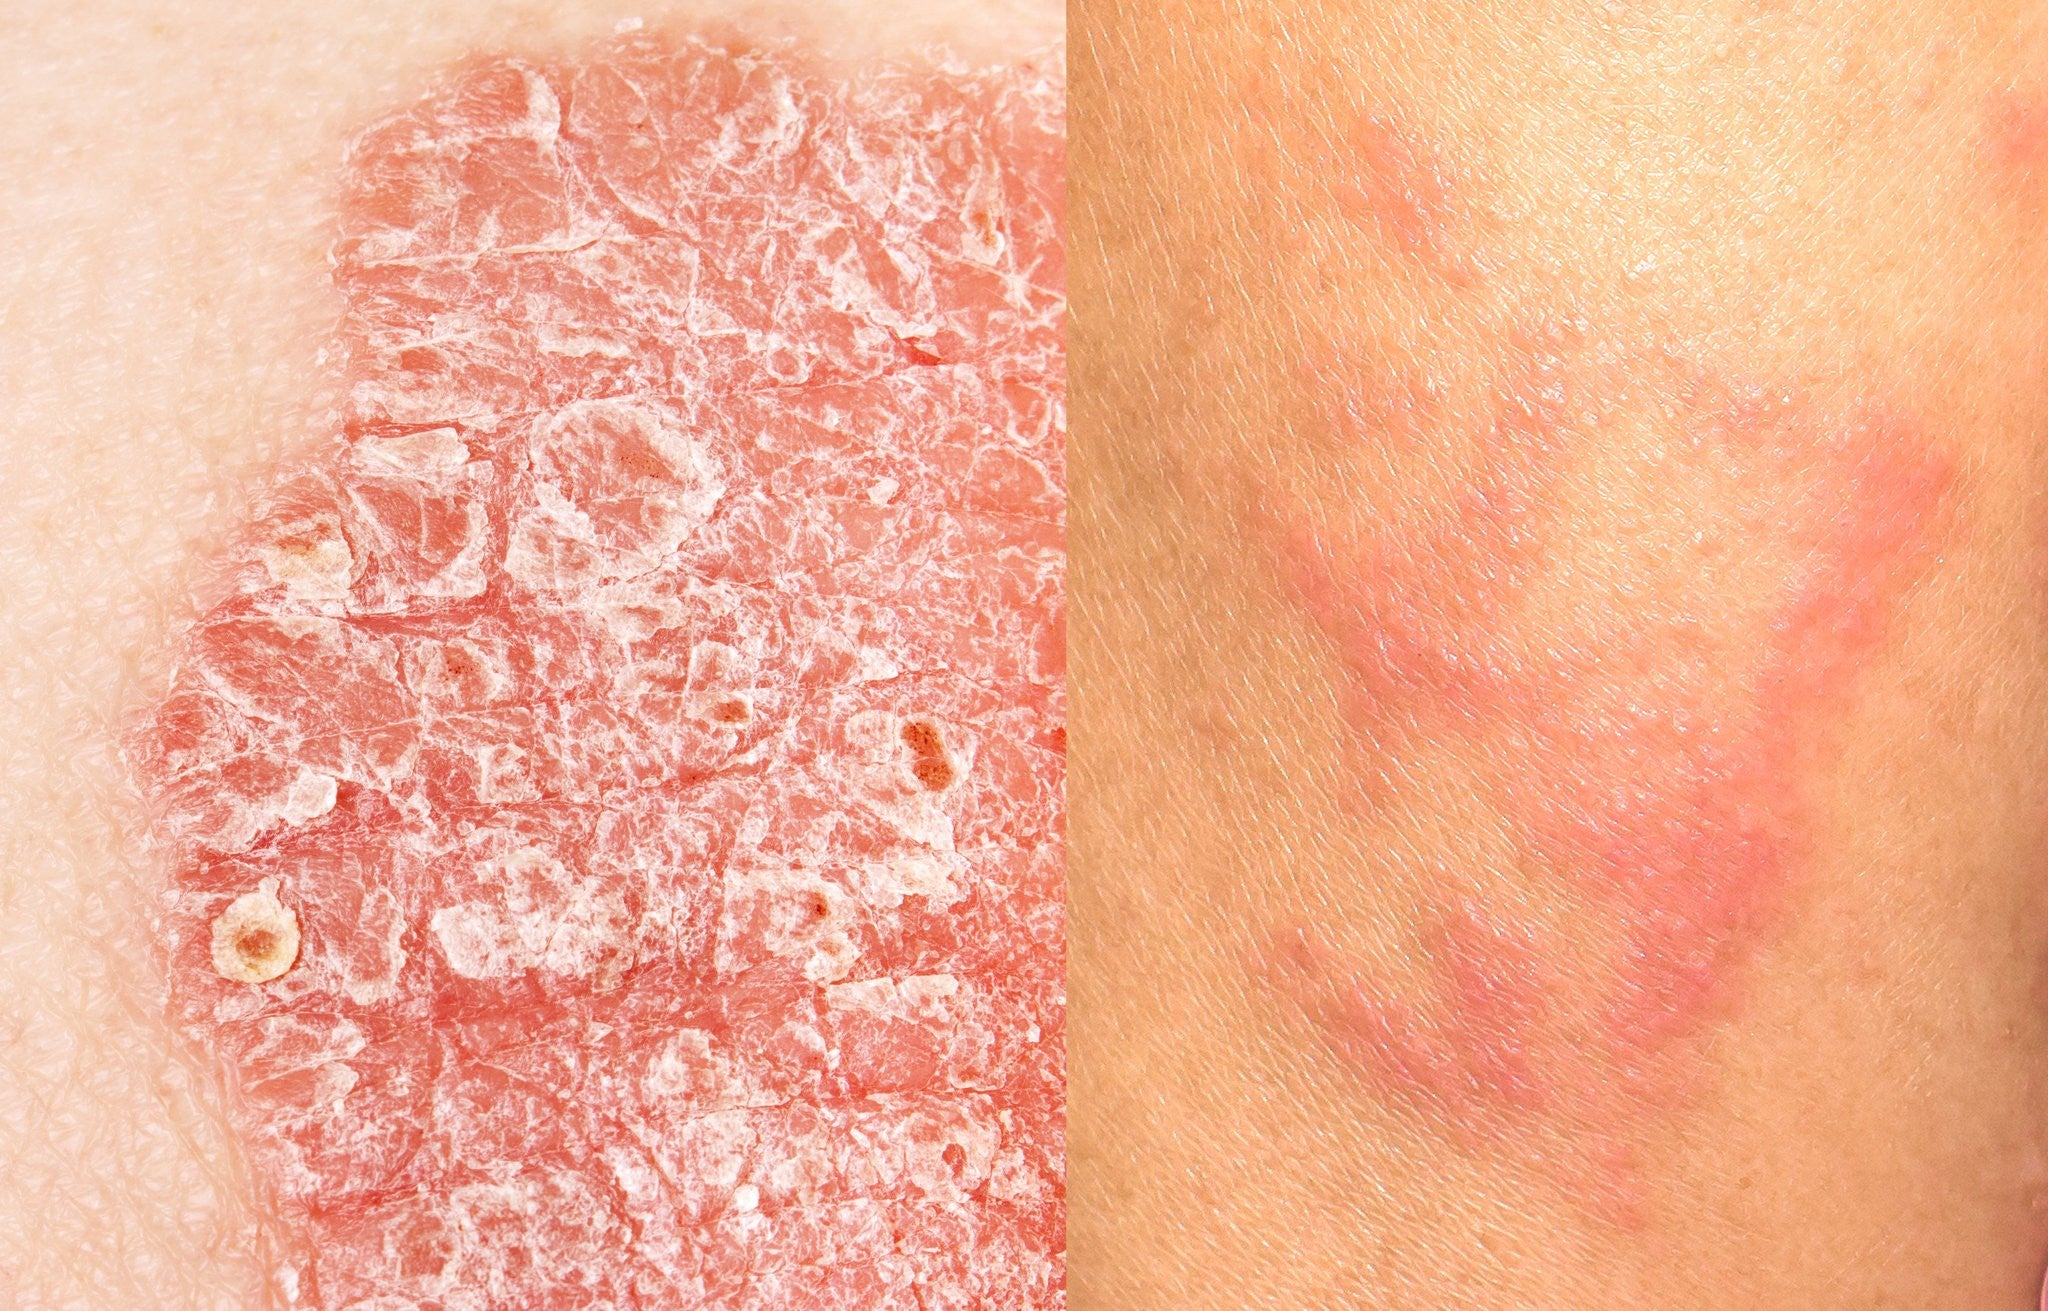 How Can I Tell the Difference Between Psoriasis and Eczema?